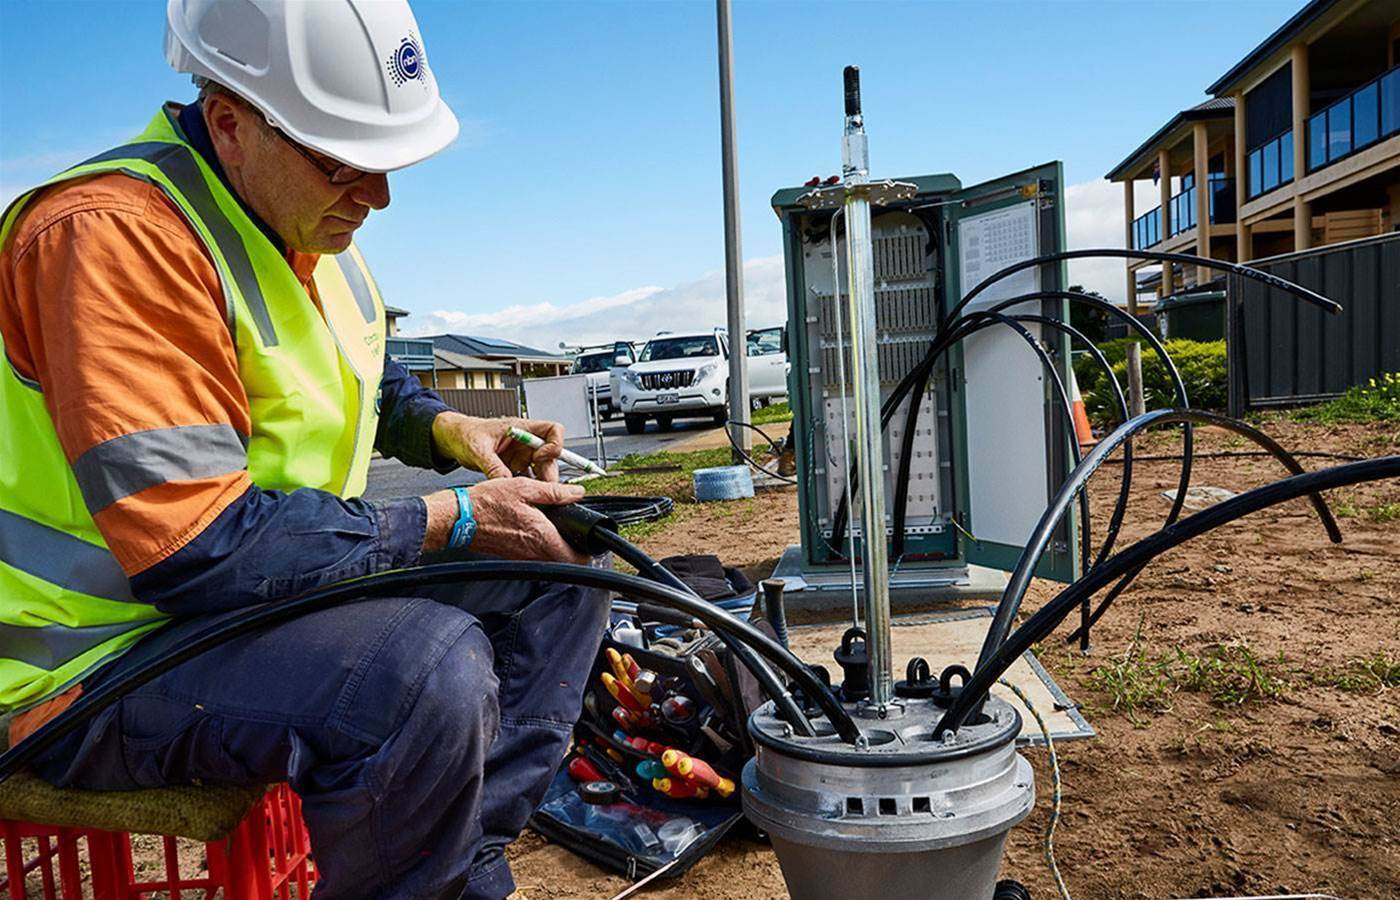 NBN Co's build costs rise $2bn, 1.2m premises delayed